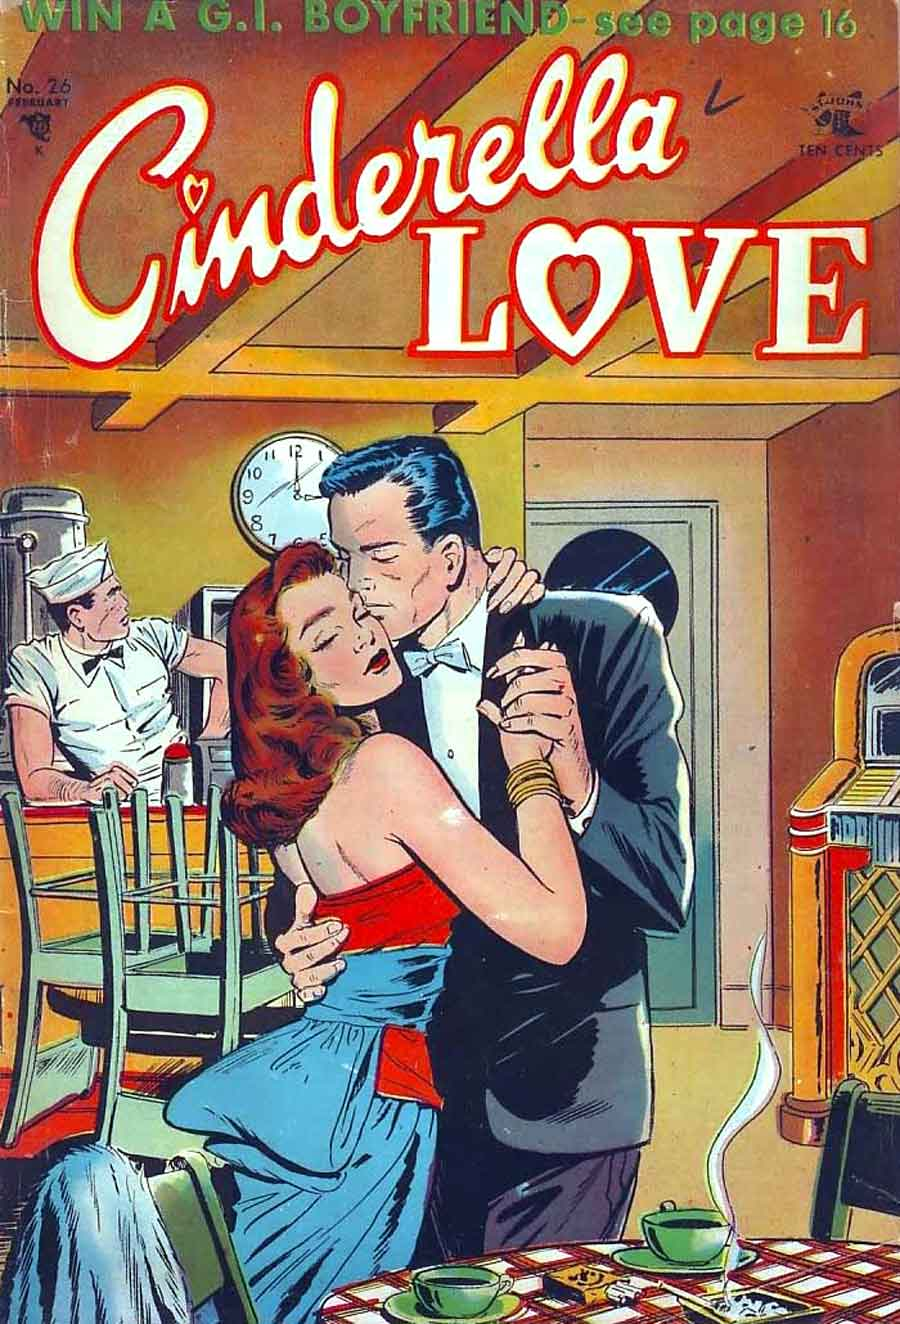 Cinderella Love v2 #26 st.john romance comic book cover art by Matt Baker